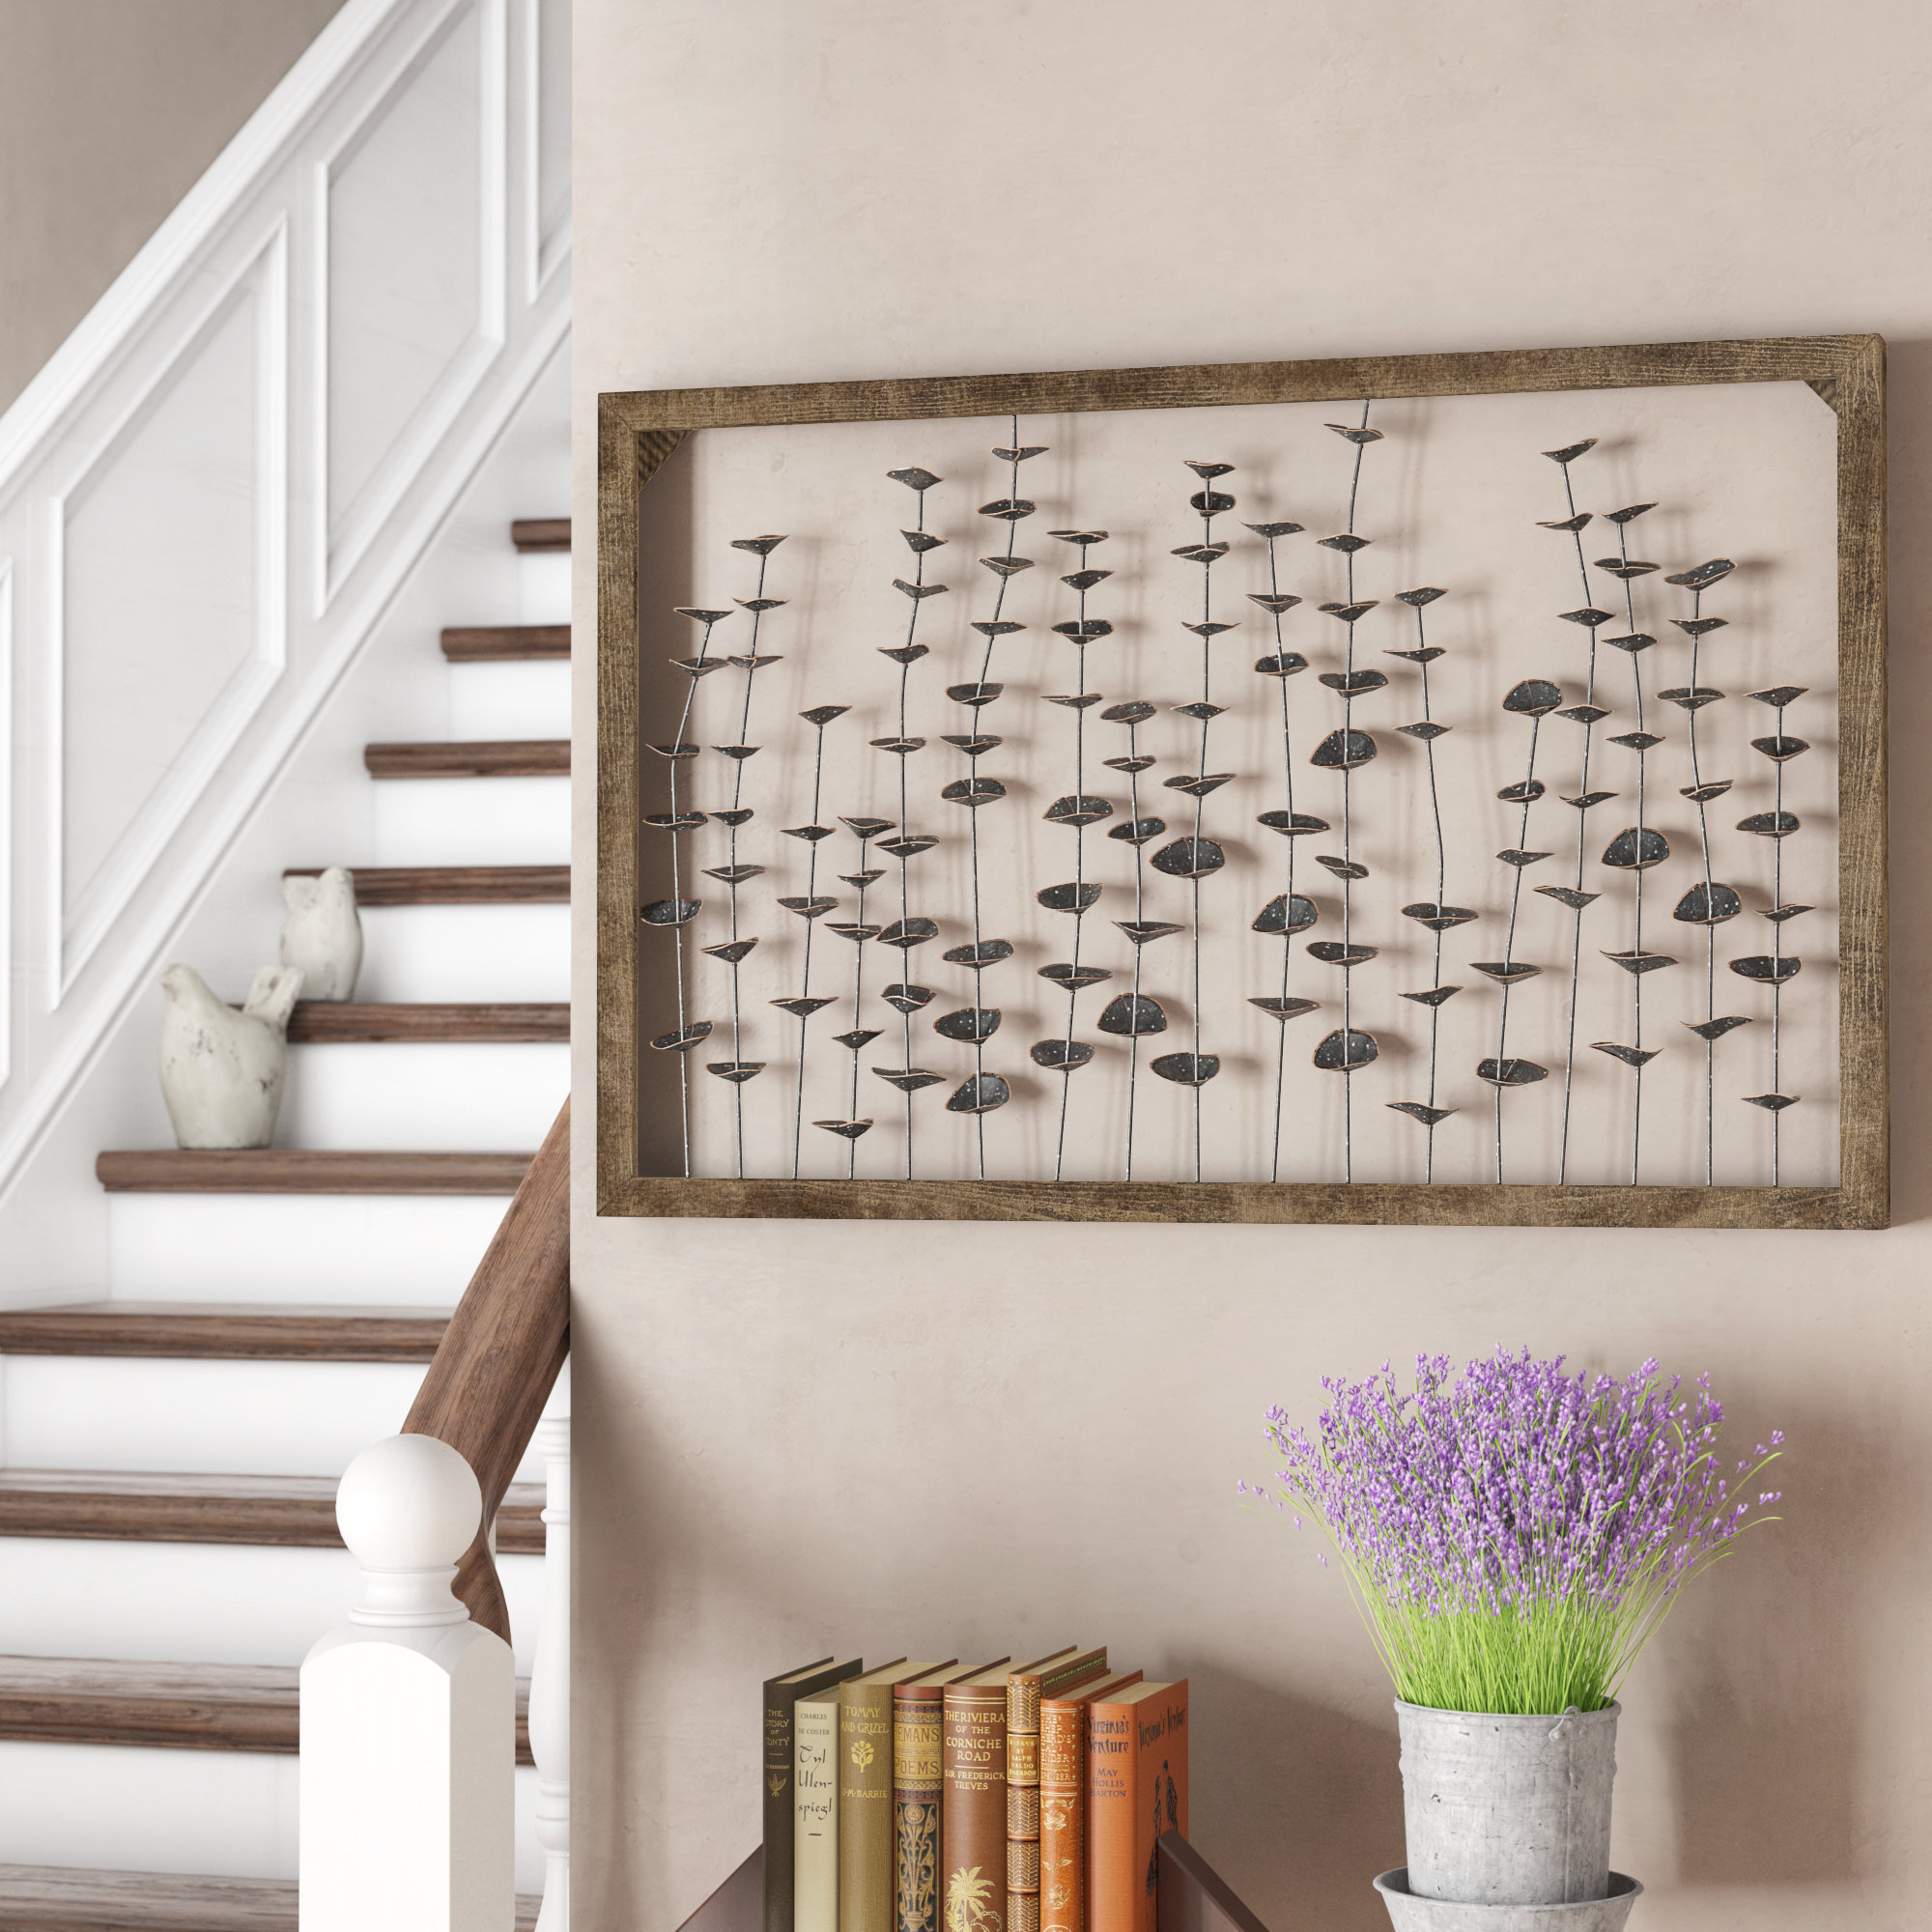 August Grove Framed Metal Flower Leaves Sculpture Wall Art Farmhouse Intended For Fashionable Leaves Metal Sculpture Wall Decor (View 7 of 20)